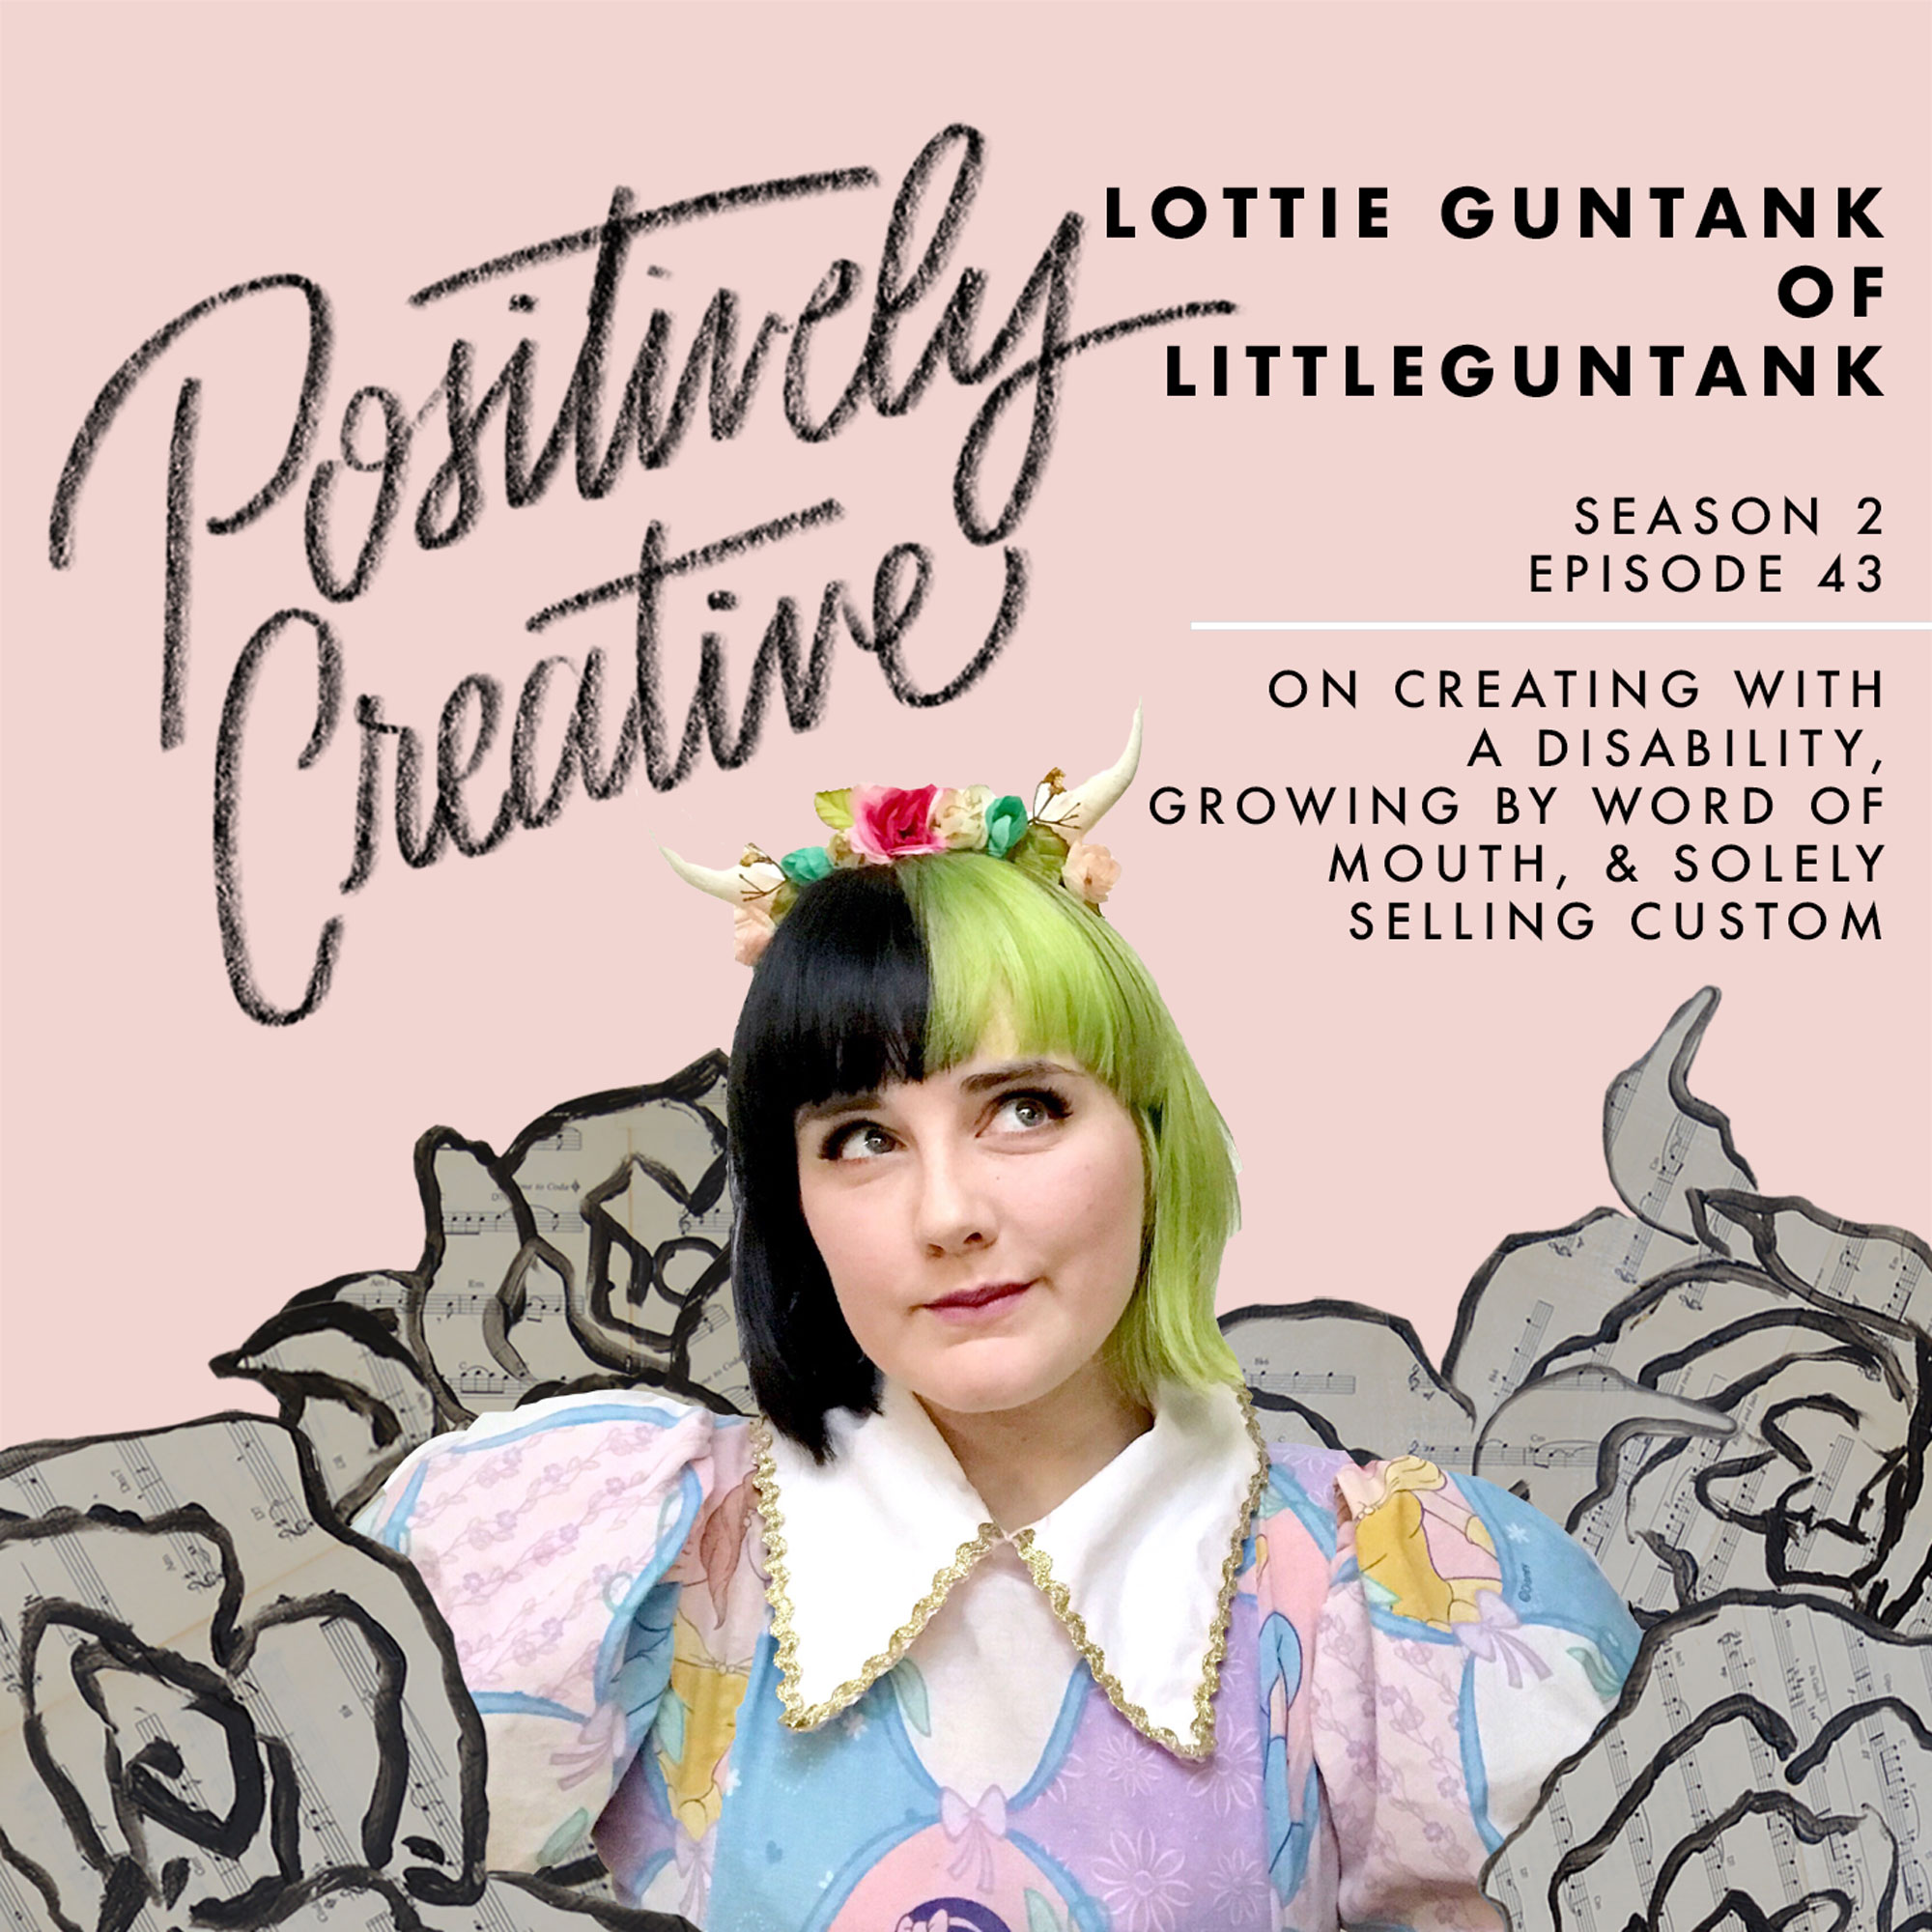 S2-Ep-43---Lottie-Guntank-of-Littleguntank-on-Creating-with-a-Disability,-Growing-by-Word-of-Mouth,-&-Solely-Selling-Custom.jpg